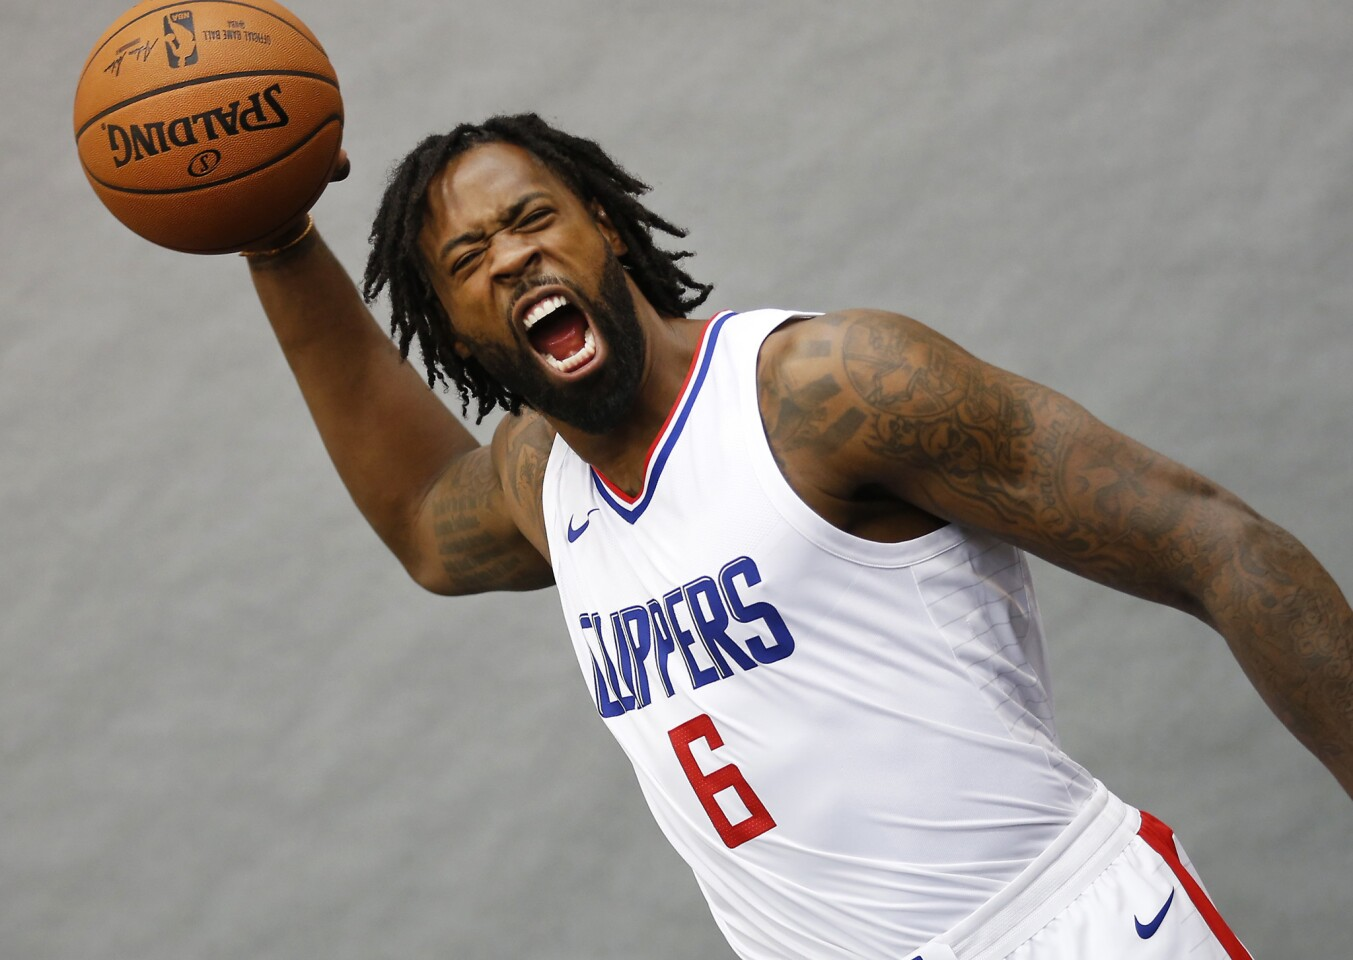 Clippers centers DeAndre Jordan screams during Clippers media day at the team's training center in Playa Vista on Sept. 25.